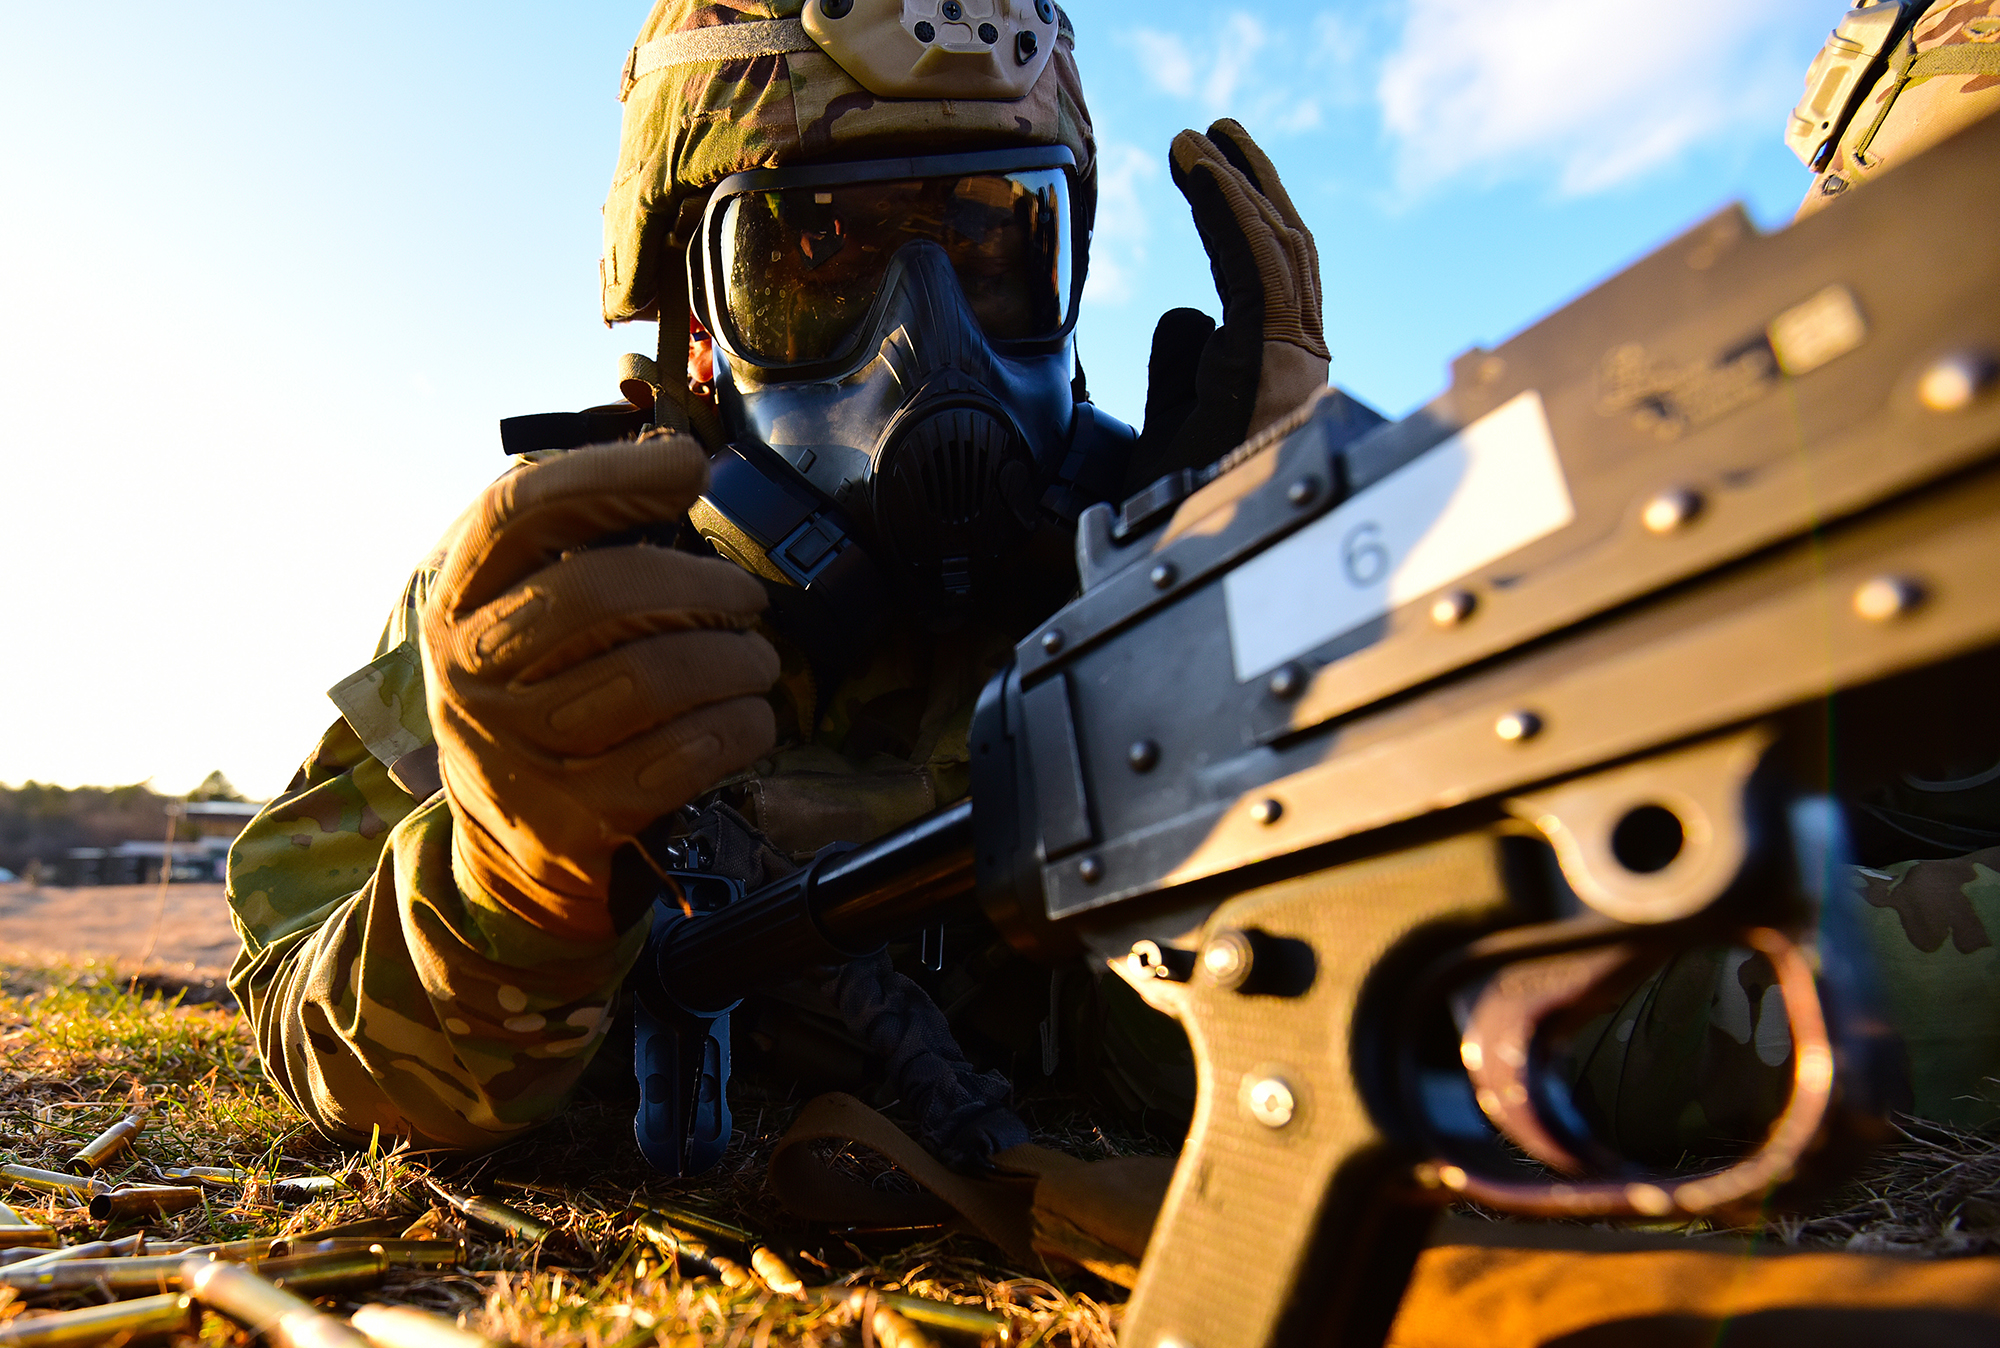 A U.S. Army paratrooper assigned to the 173rd Brigade Support Battalion, 173rd Airborne Brigade, fits his M50 gas mask during a live-fire exercise as part ofLipizzaner VI at Bac Range in Postojna, Slovenia, Jan. 29, 2020. (Paolo Bovo/Army)